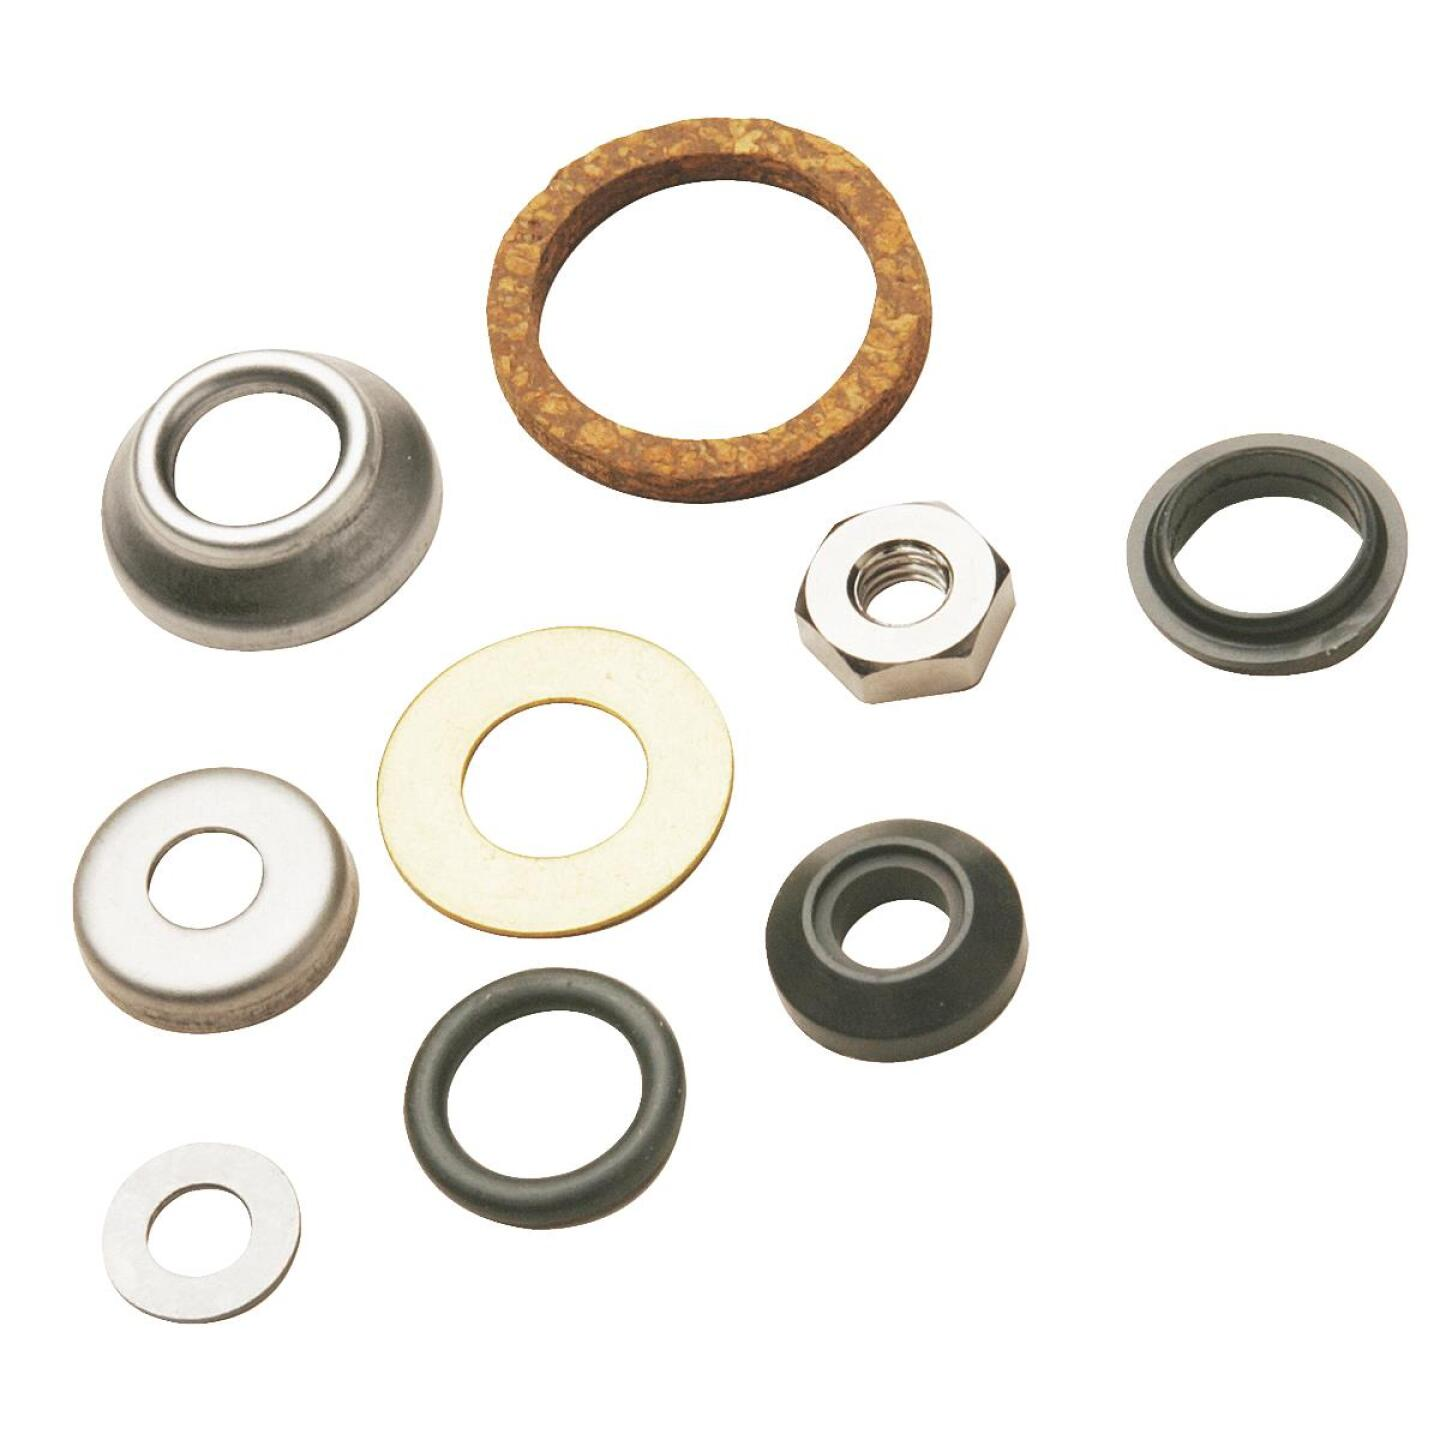 Do it Chicago Rubber, Metal, Fiber Faucet Repair Kit Image 1